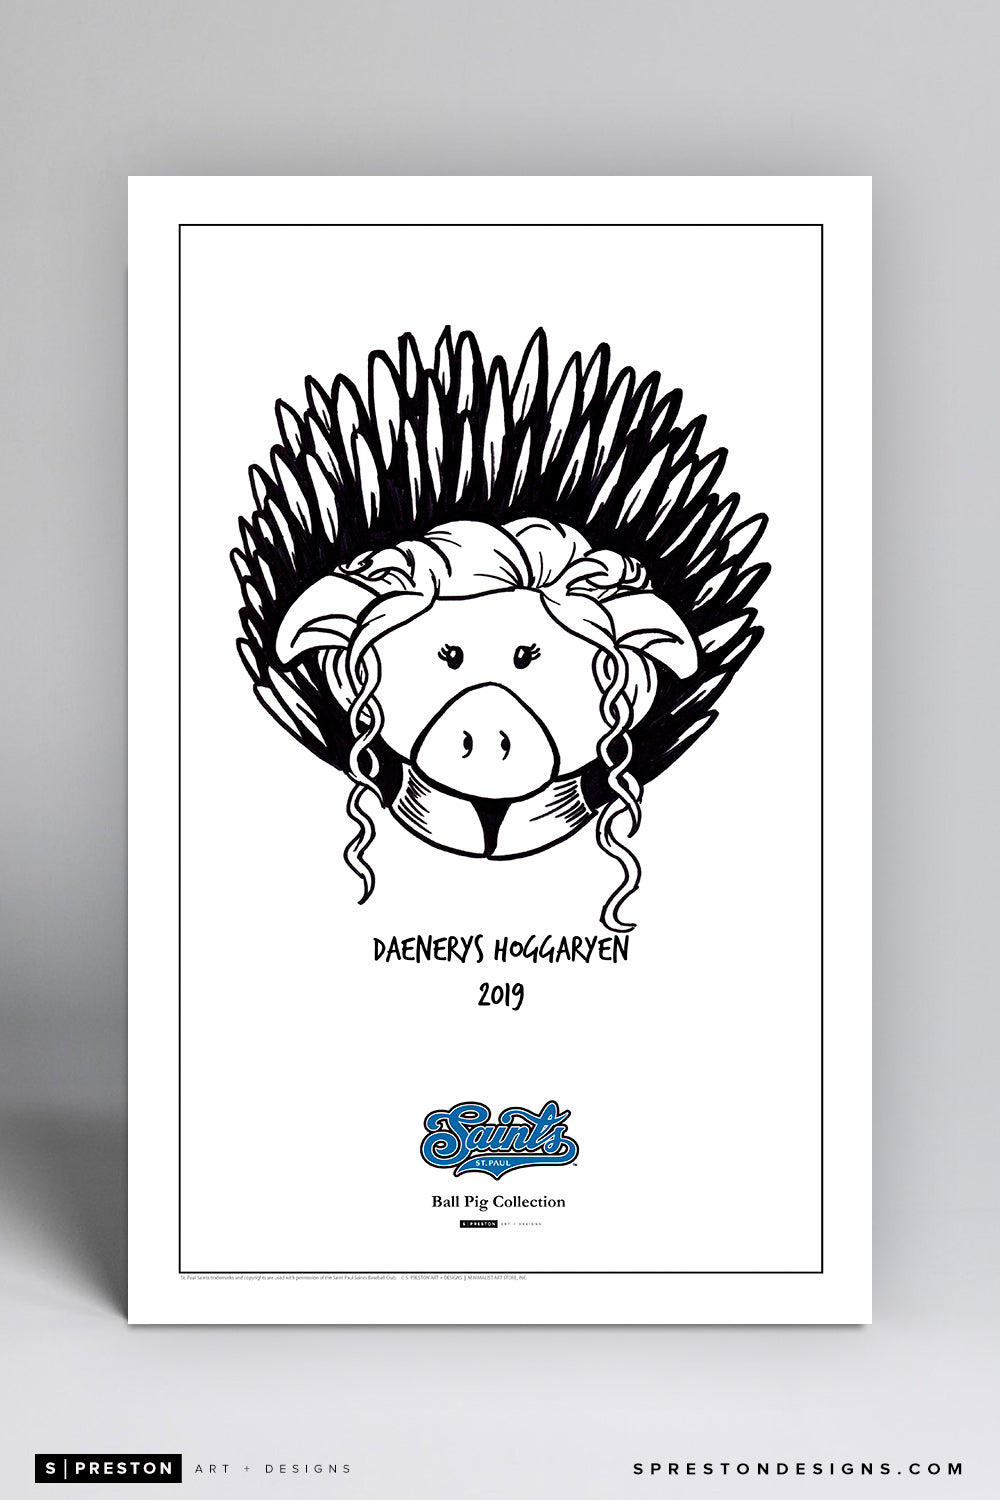 Daenerys Hoggaryen - Ball Pigs Of The St. Paul Saints Art Poster